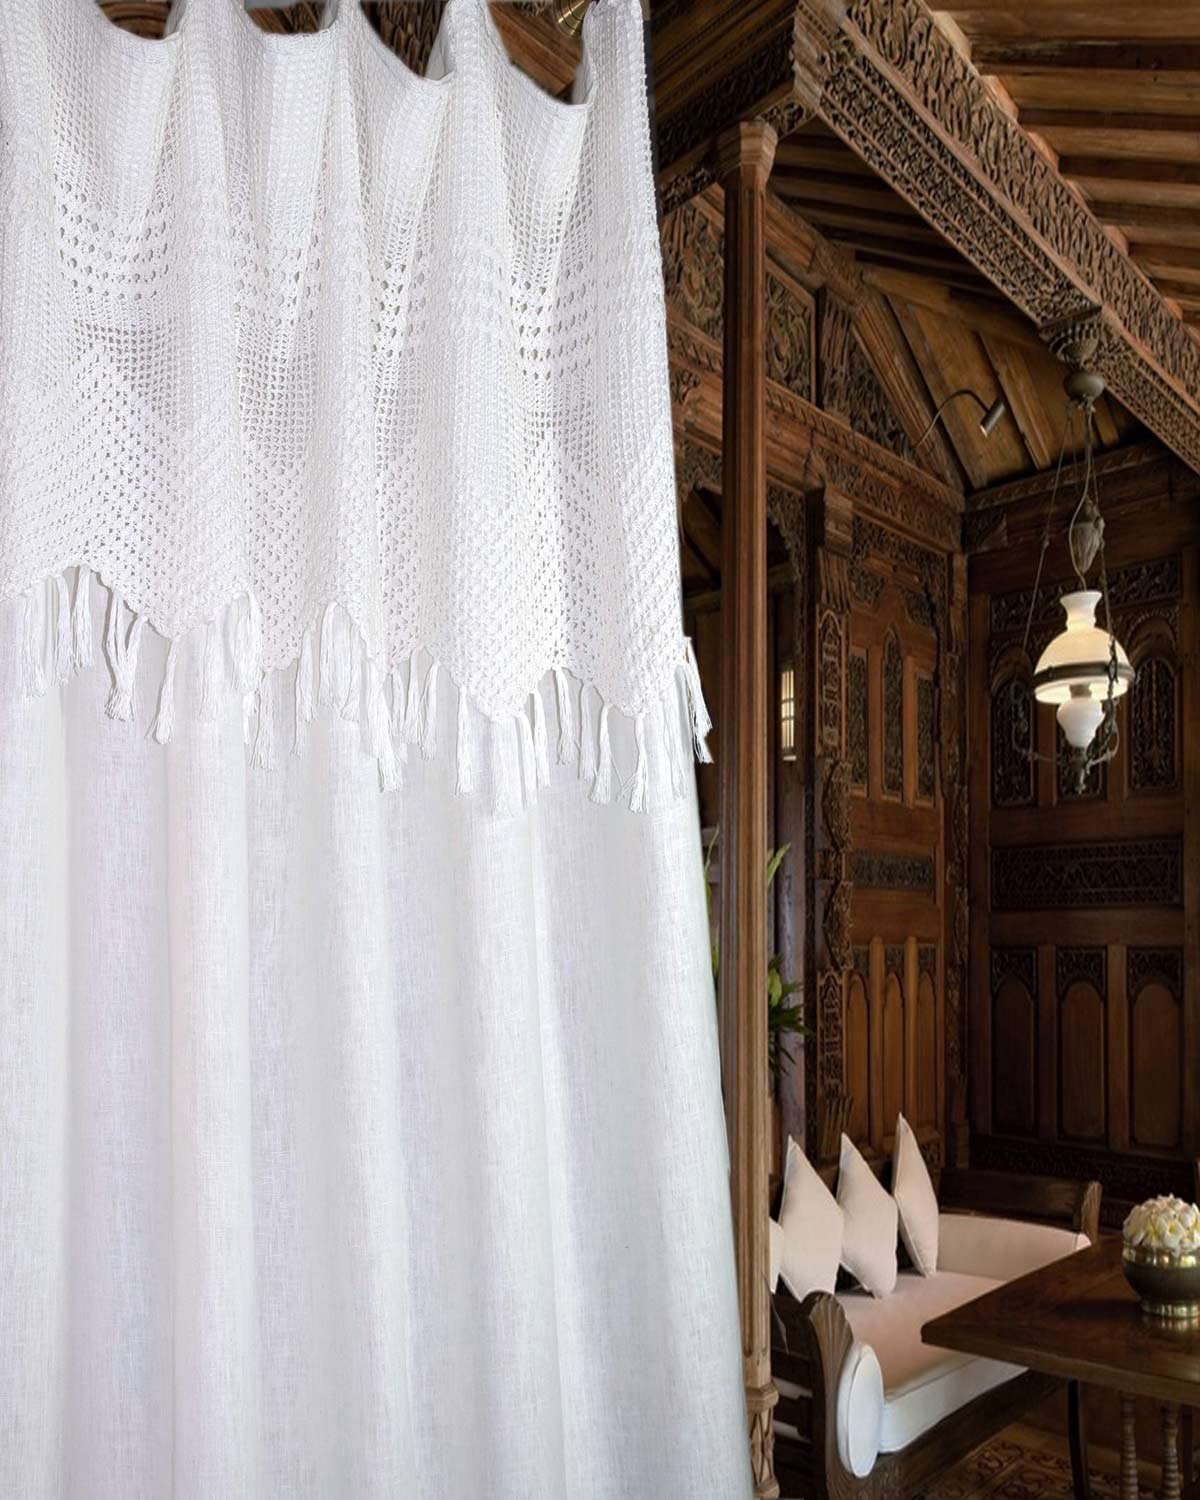 Silk n Drapes and More White Linen with Crocheted Valance Attached Living Room Window Treatment Curtain Panel (52